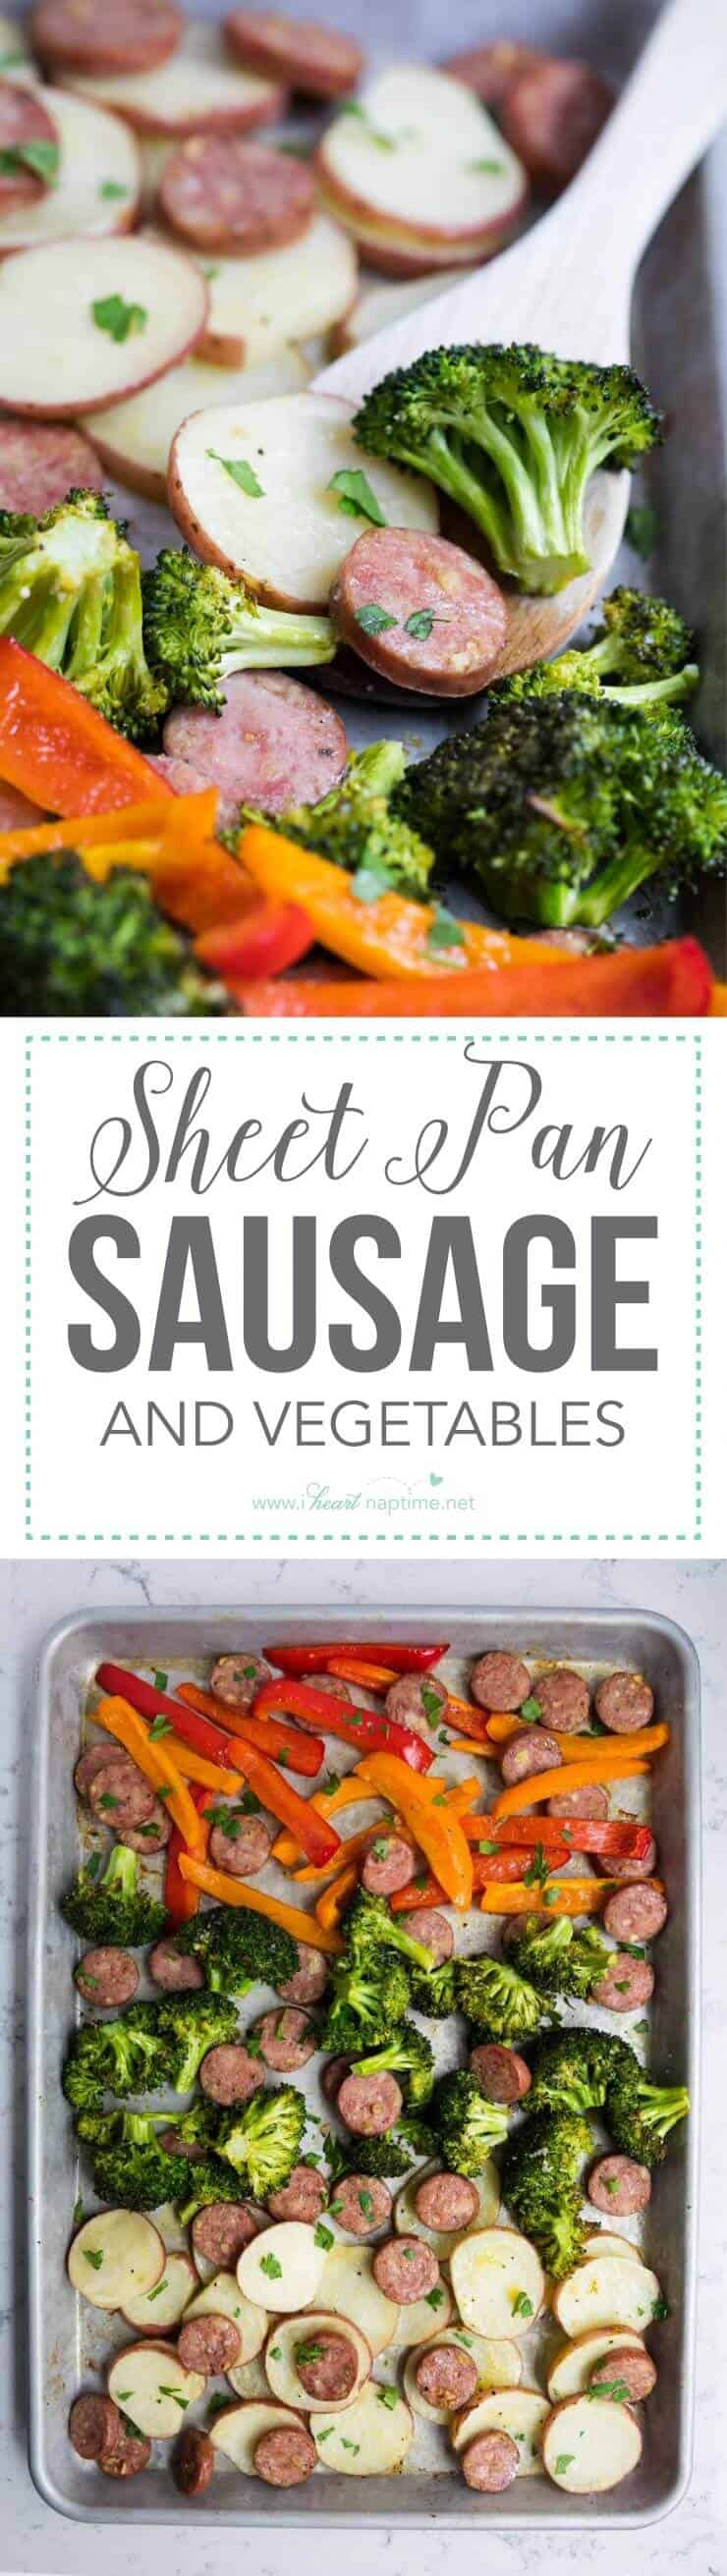 Sheet pan sausage and vegetables -a healthy recipe that is SO easy to make and is full of flavor. Whole 30 approved!